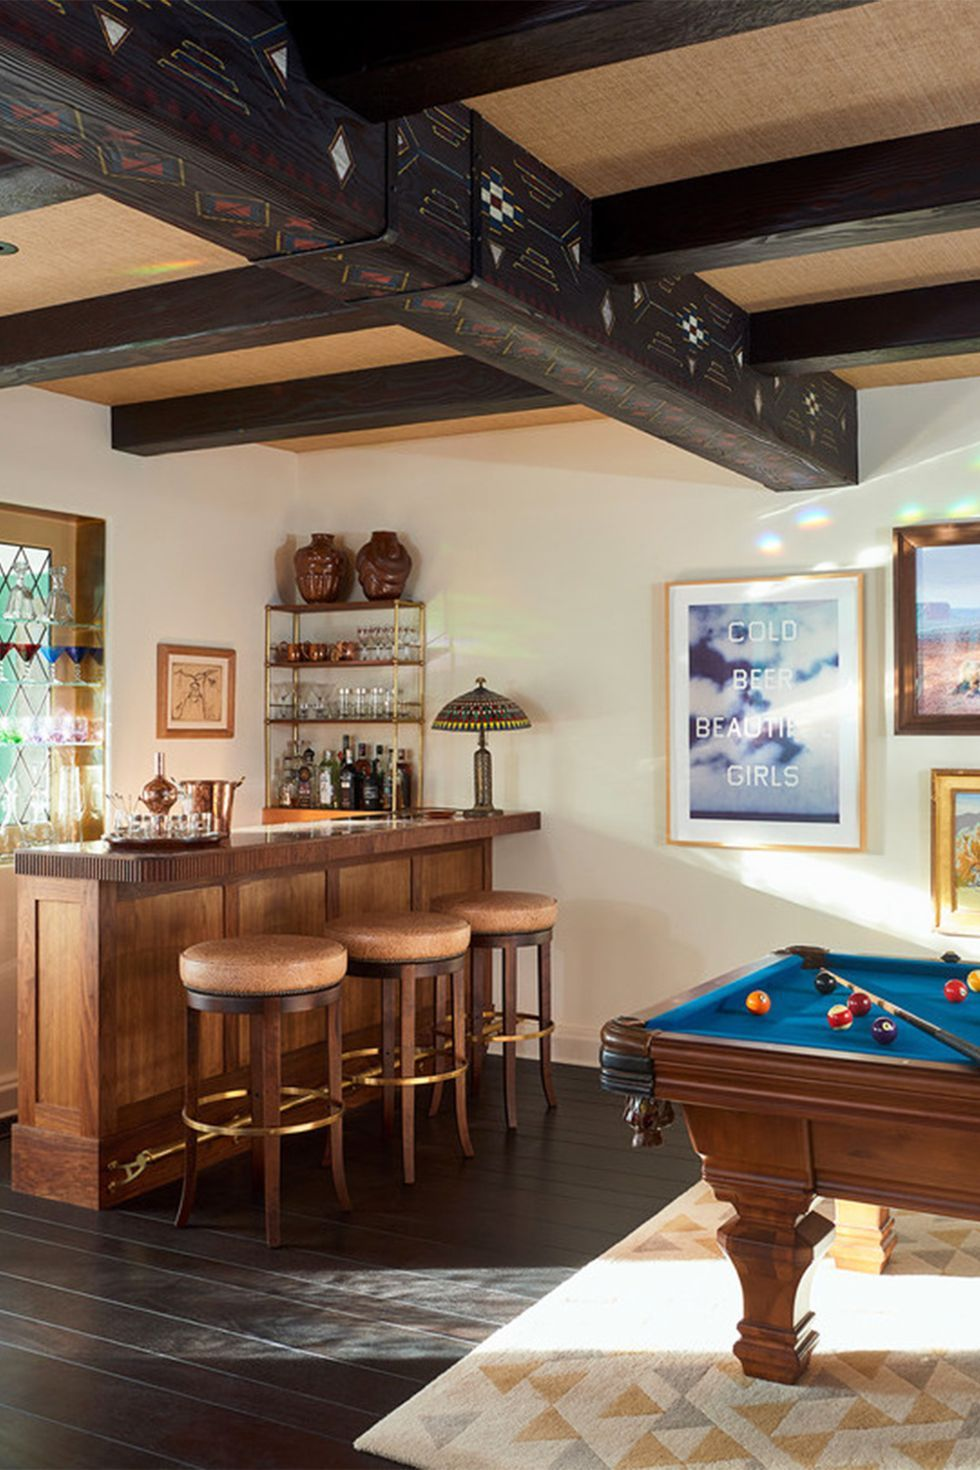 37 Epic Game Room Ideas How To Design A Home Entertainment Space